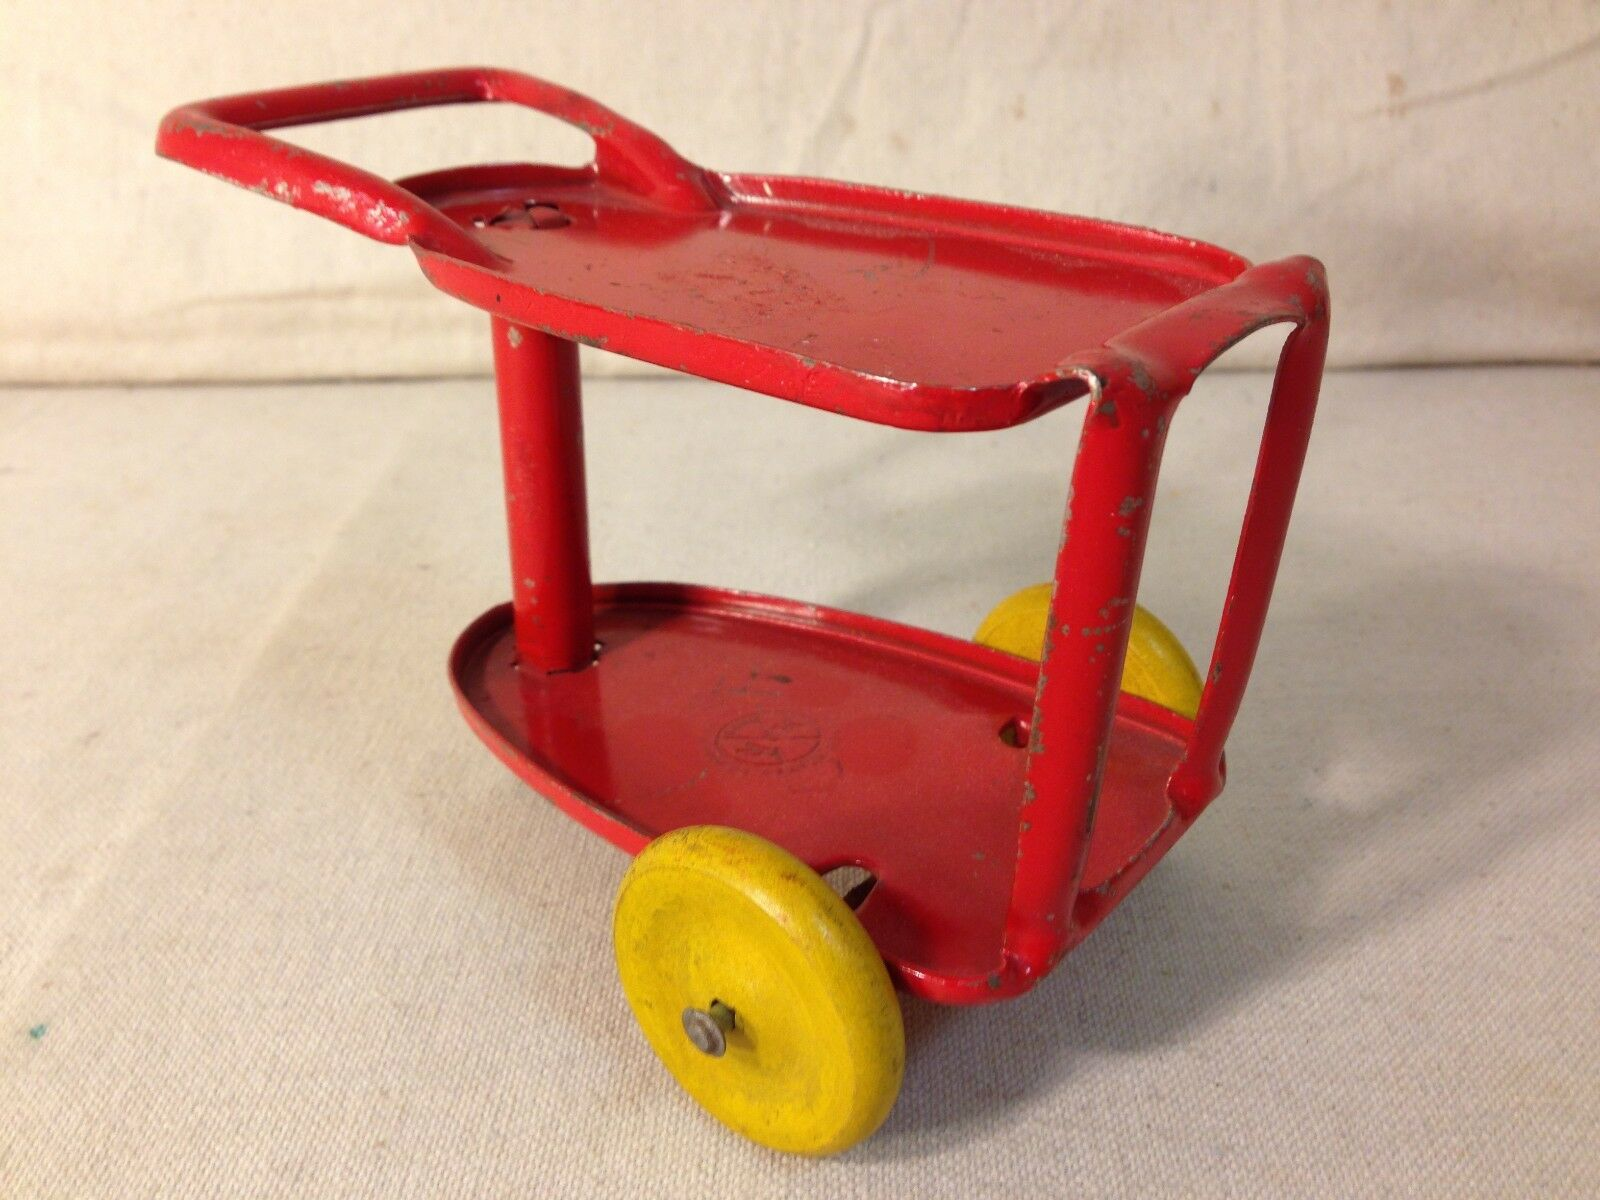 VINTAGE MARX DIE CAST rouge TOY CART TABLE 1930'S-40'S